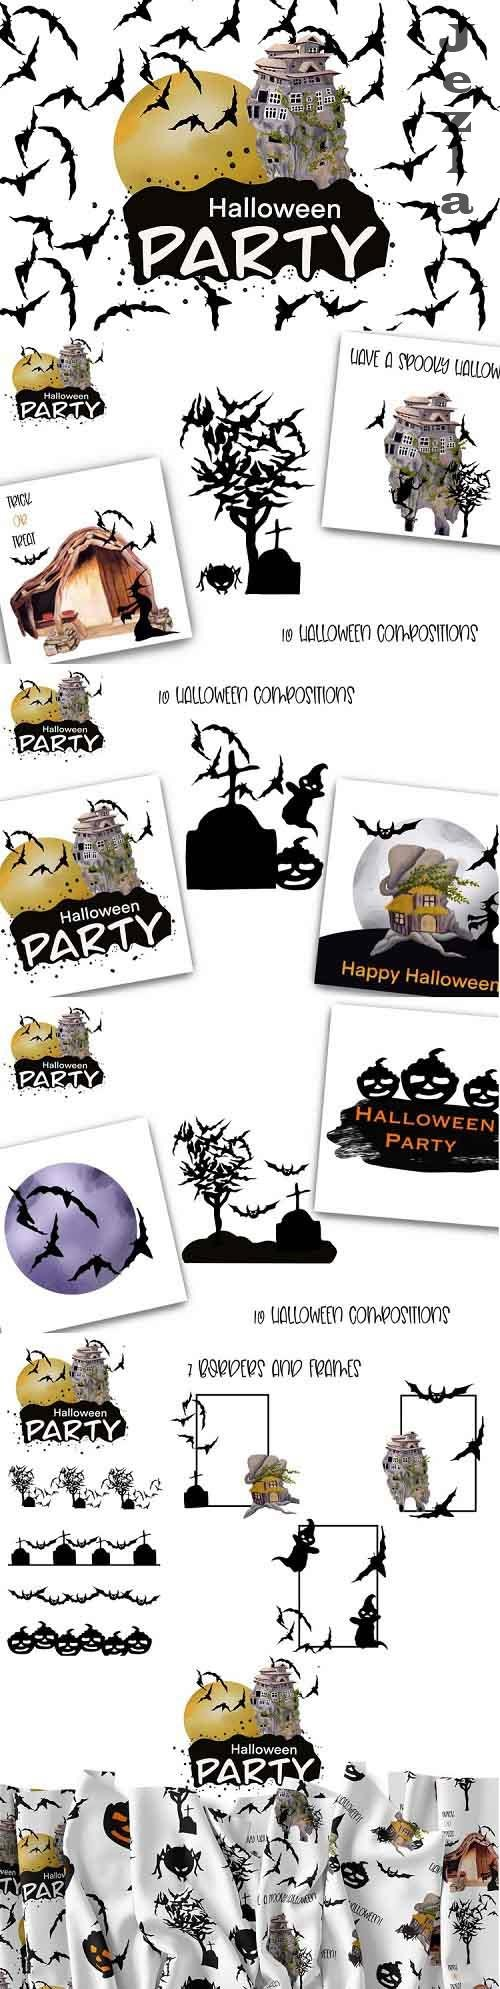 Halloween Party Collection - 824492